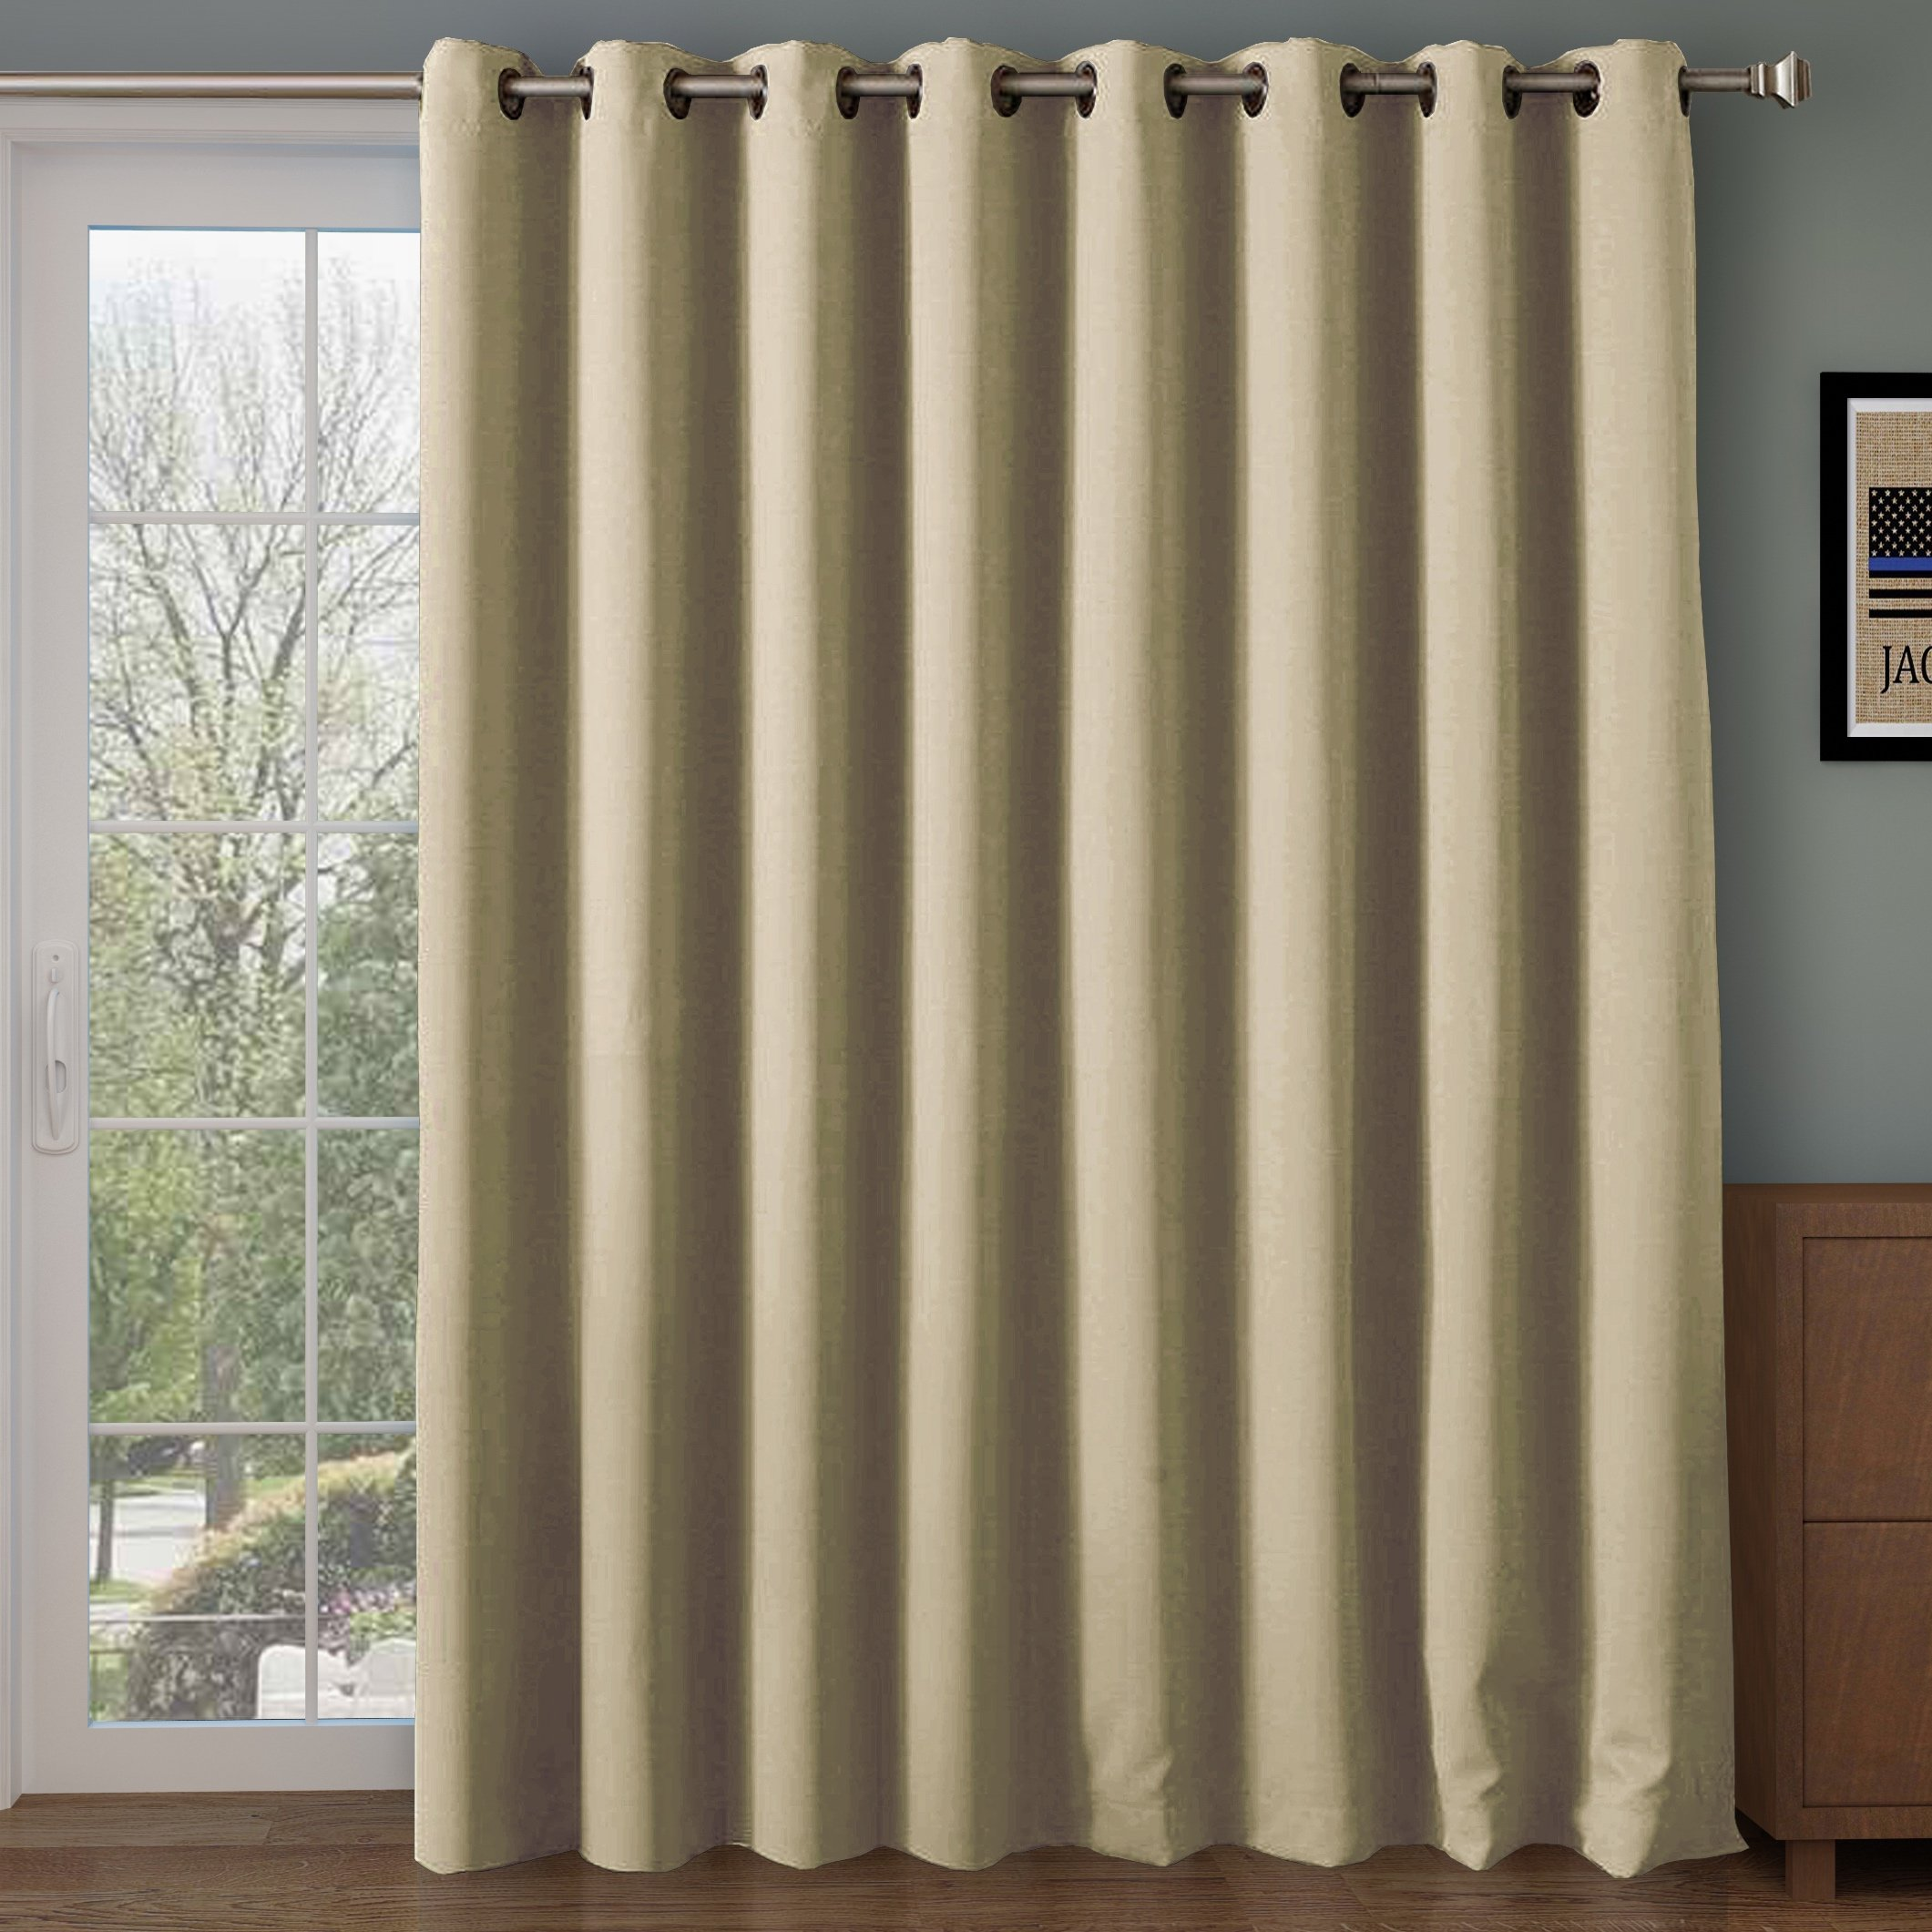 RHF Wide Thermal Blackout Patio Door Curtain Panel Sliding Insulated CurtainsThermal Curtains